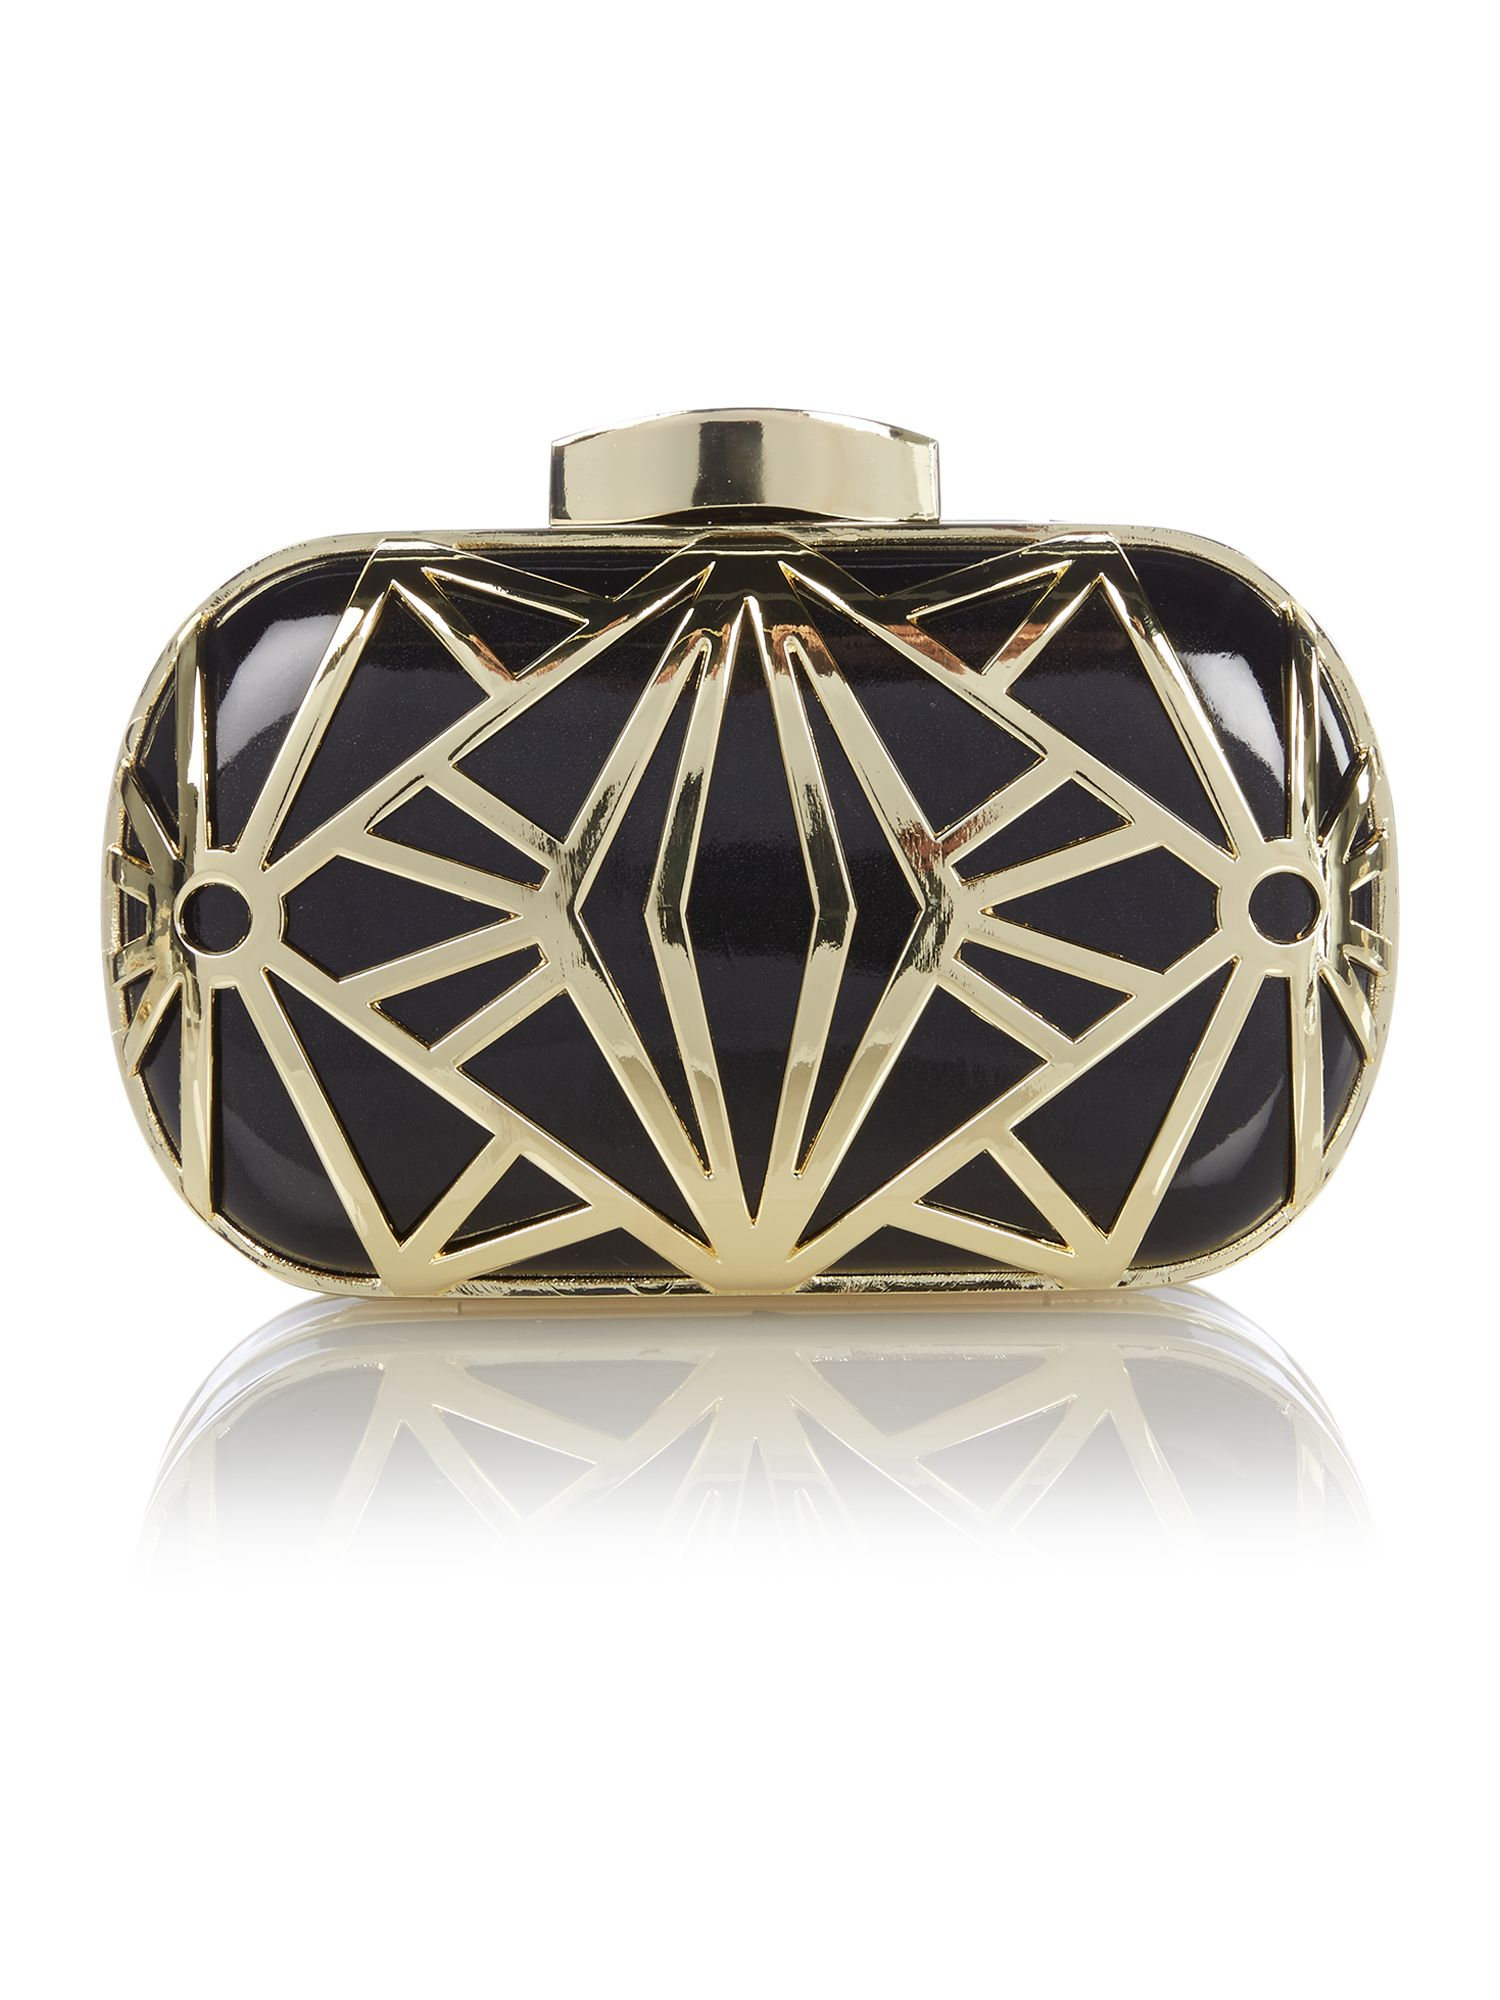 1930s Handbags and Purses Fashion Biba Deco box logo clutch £59.00 AT vintagedancer.com